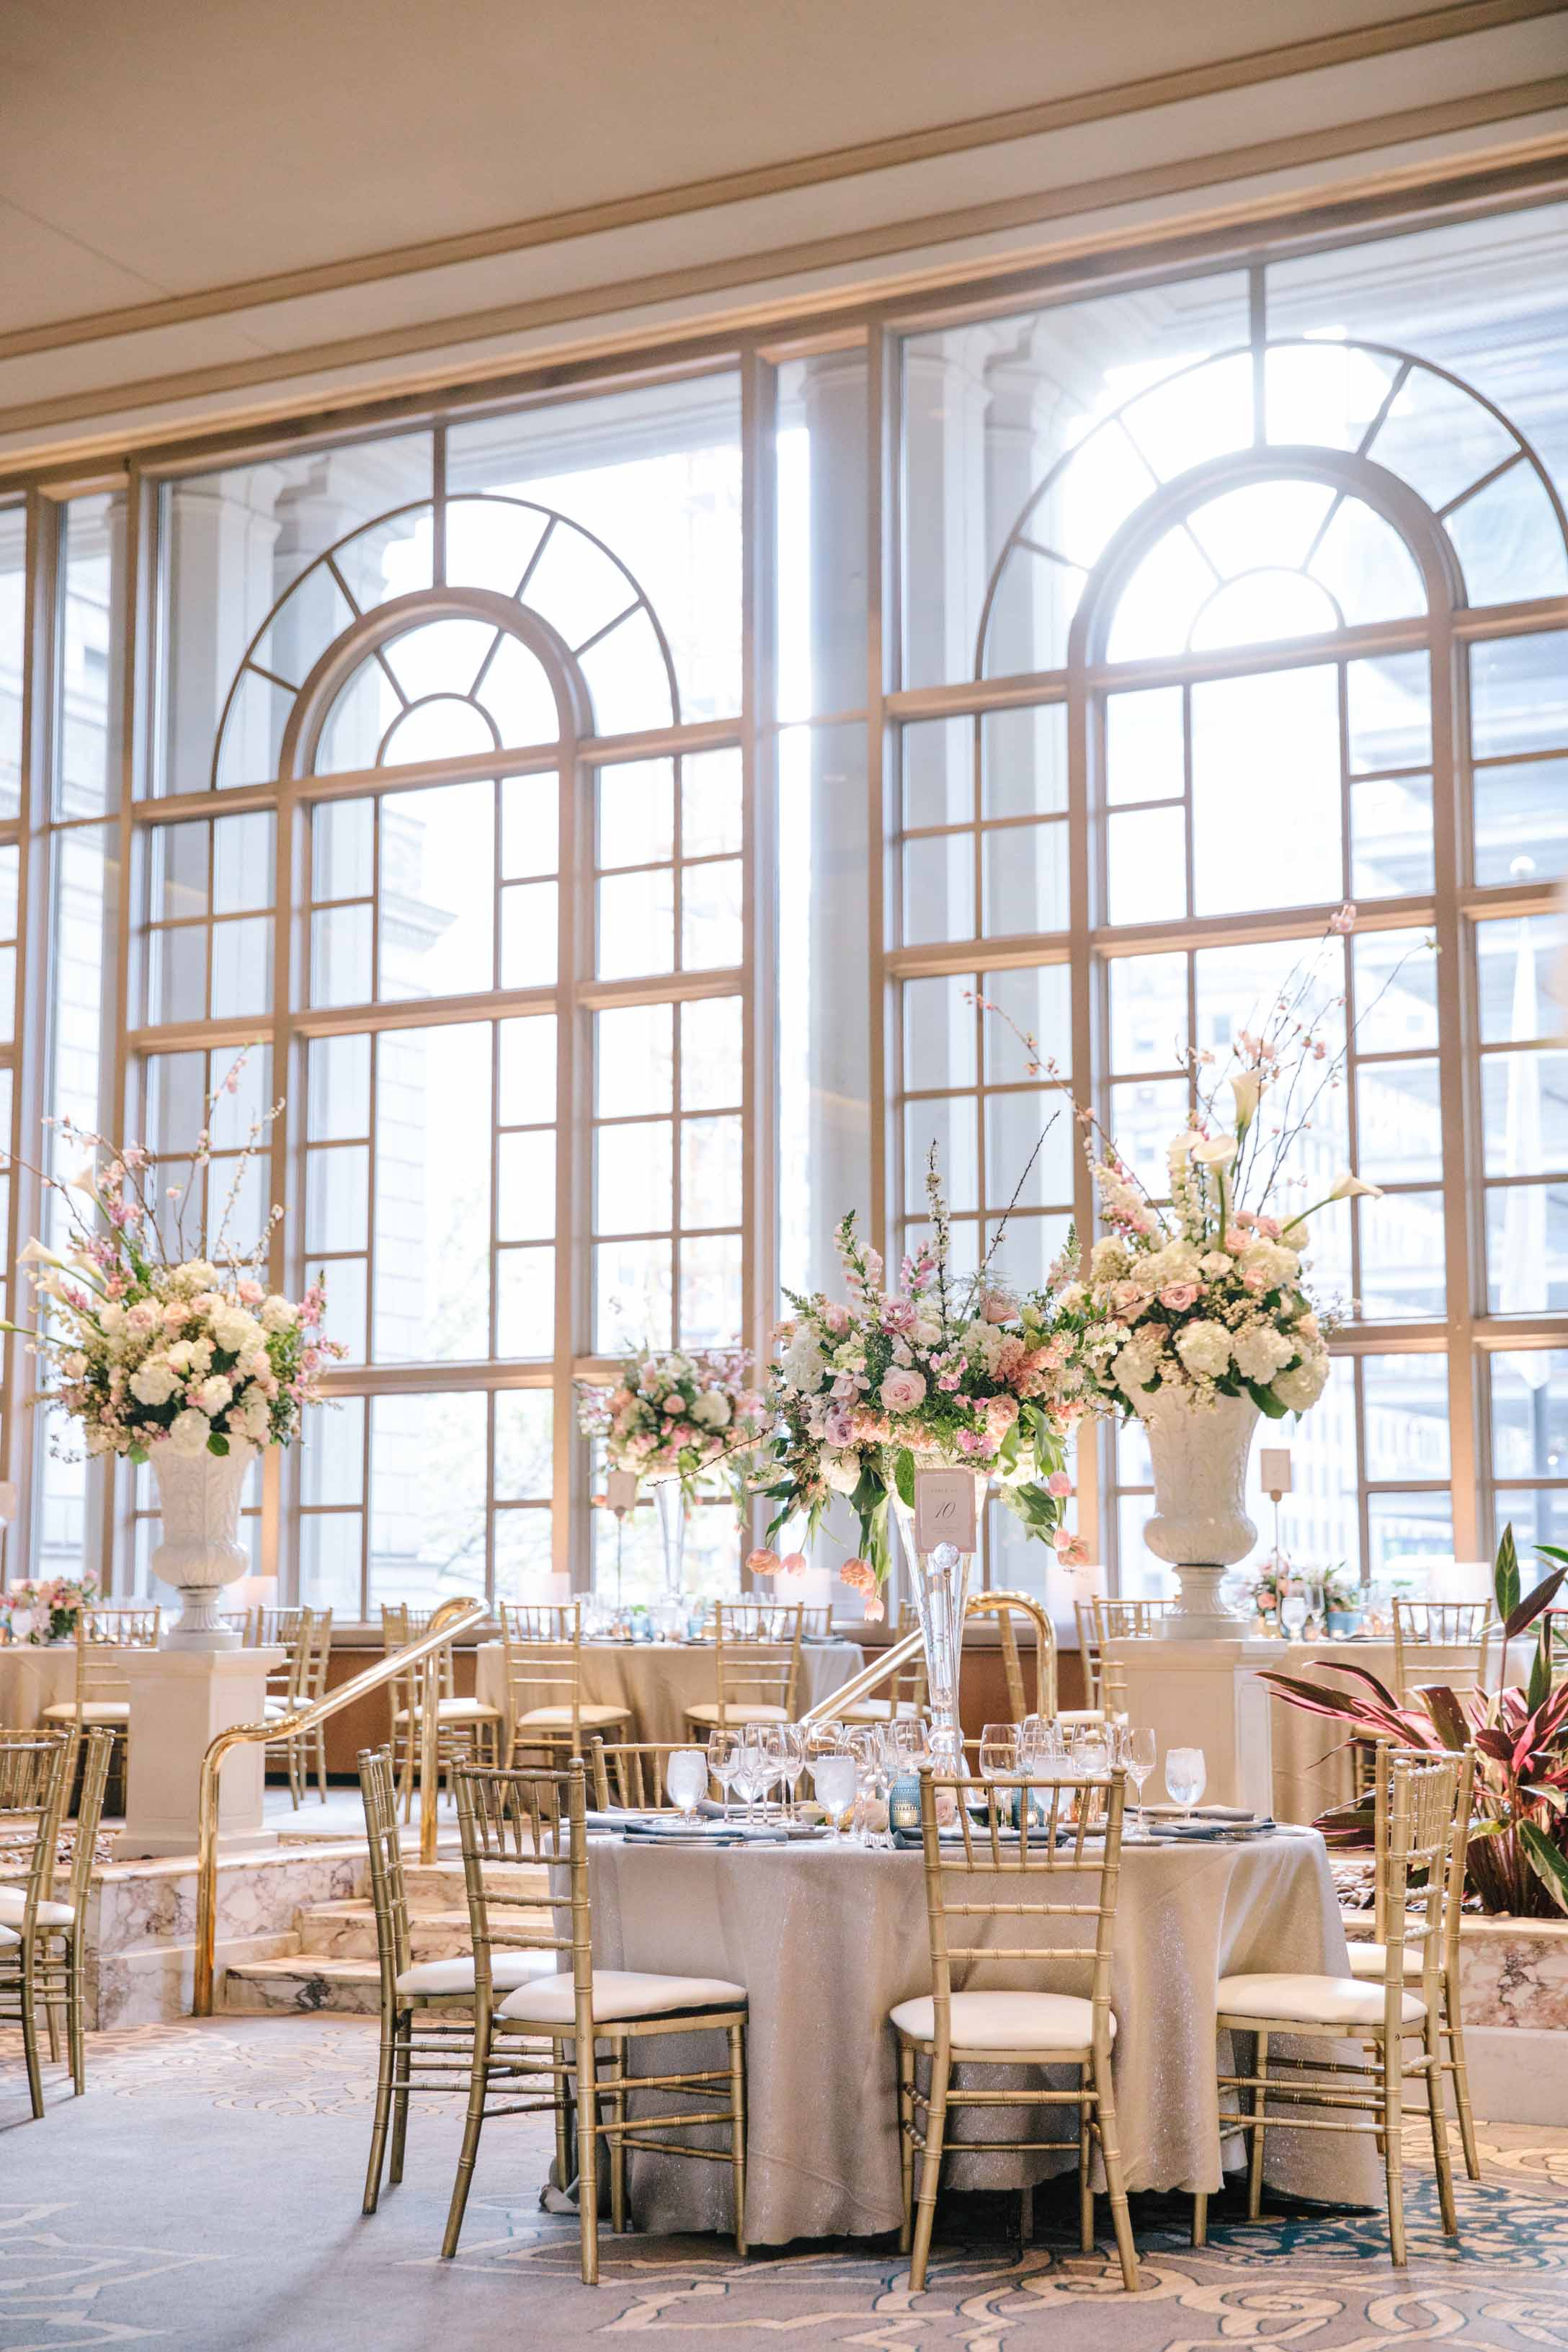 Tall floral arrangements in crystal vases and white urns in the Garden room of the Fairmont Olympic Hotel